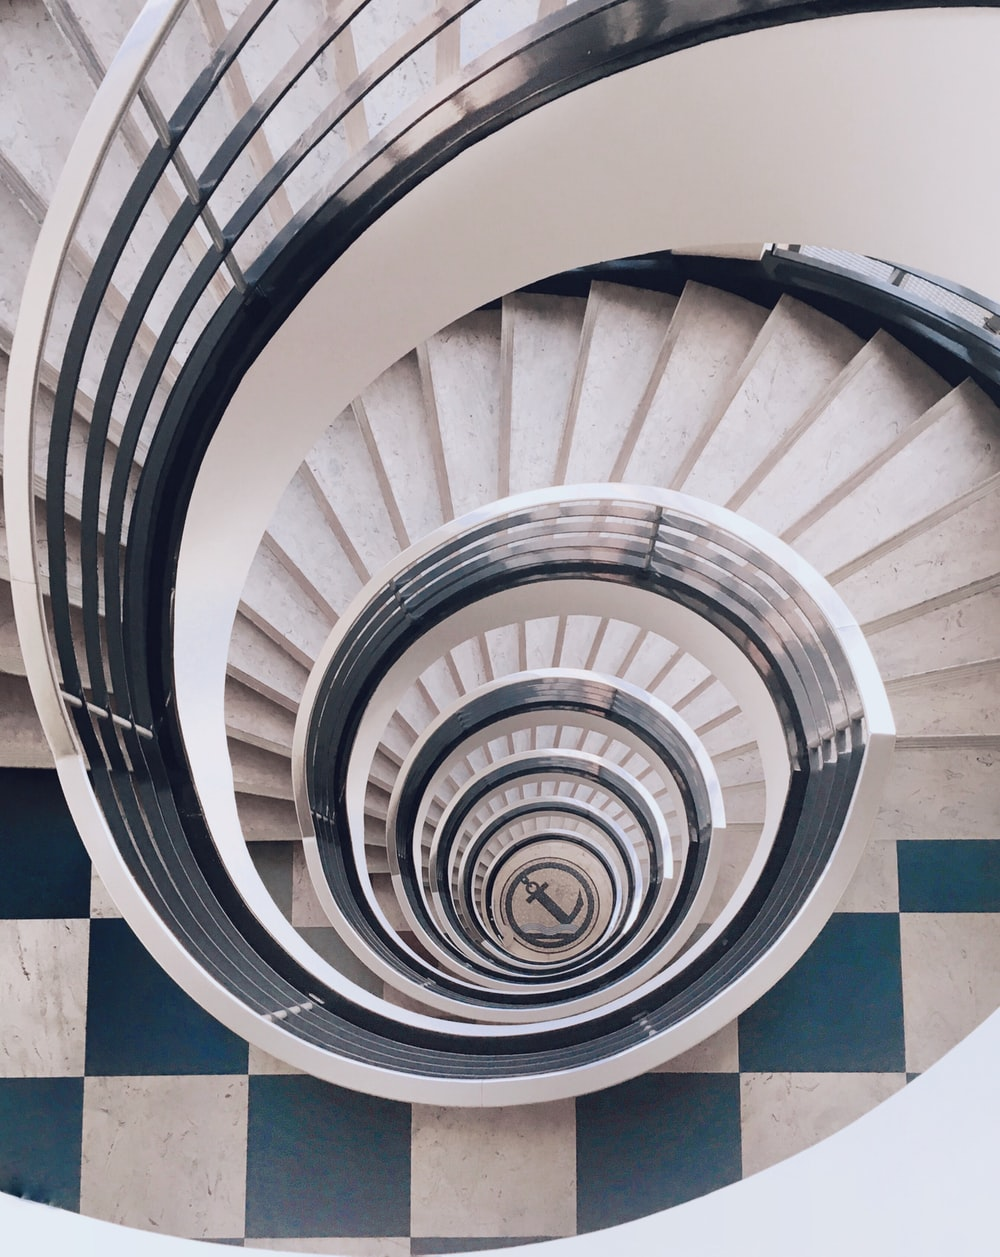 white and gray spiral stairs with no people